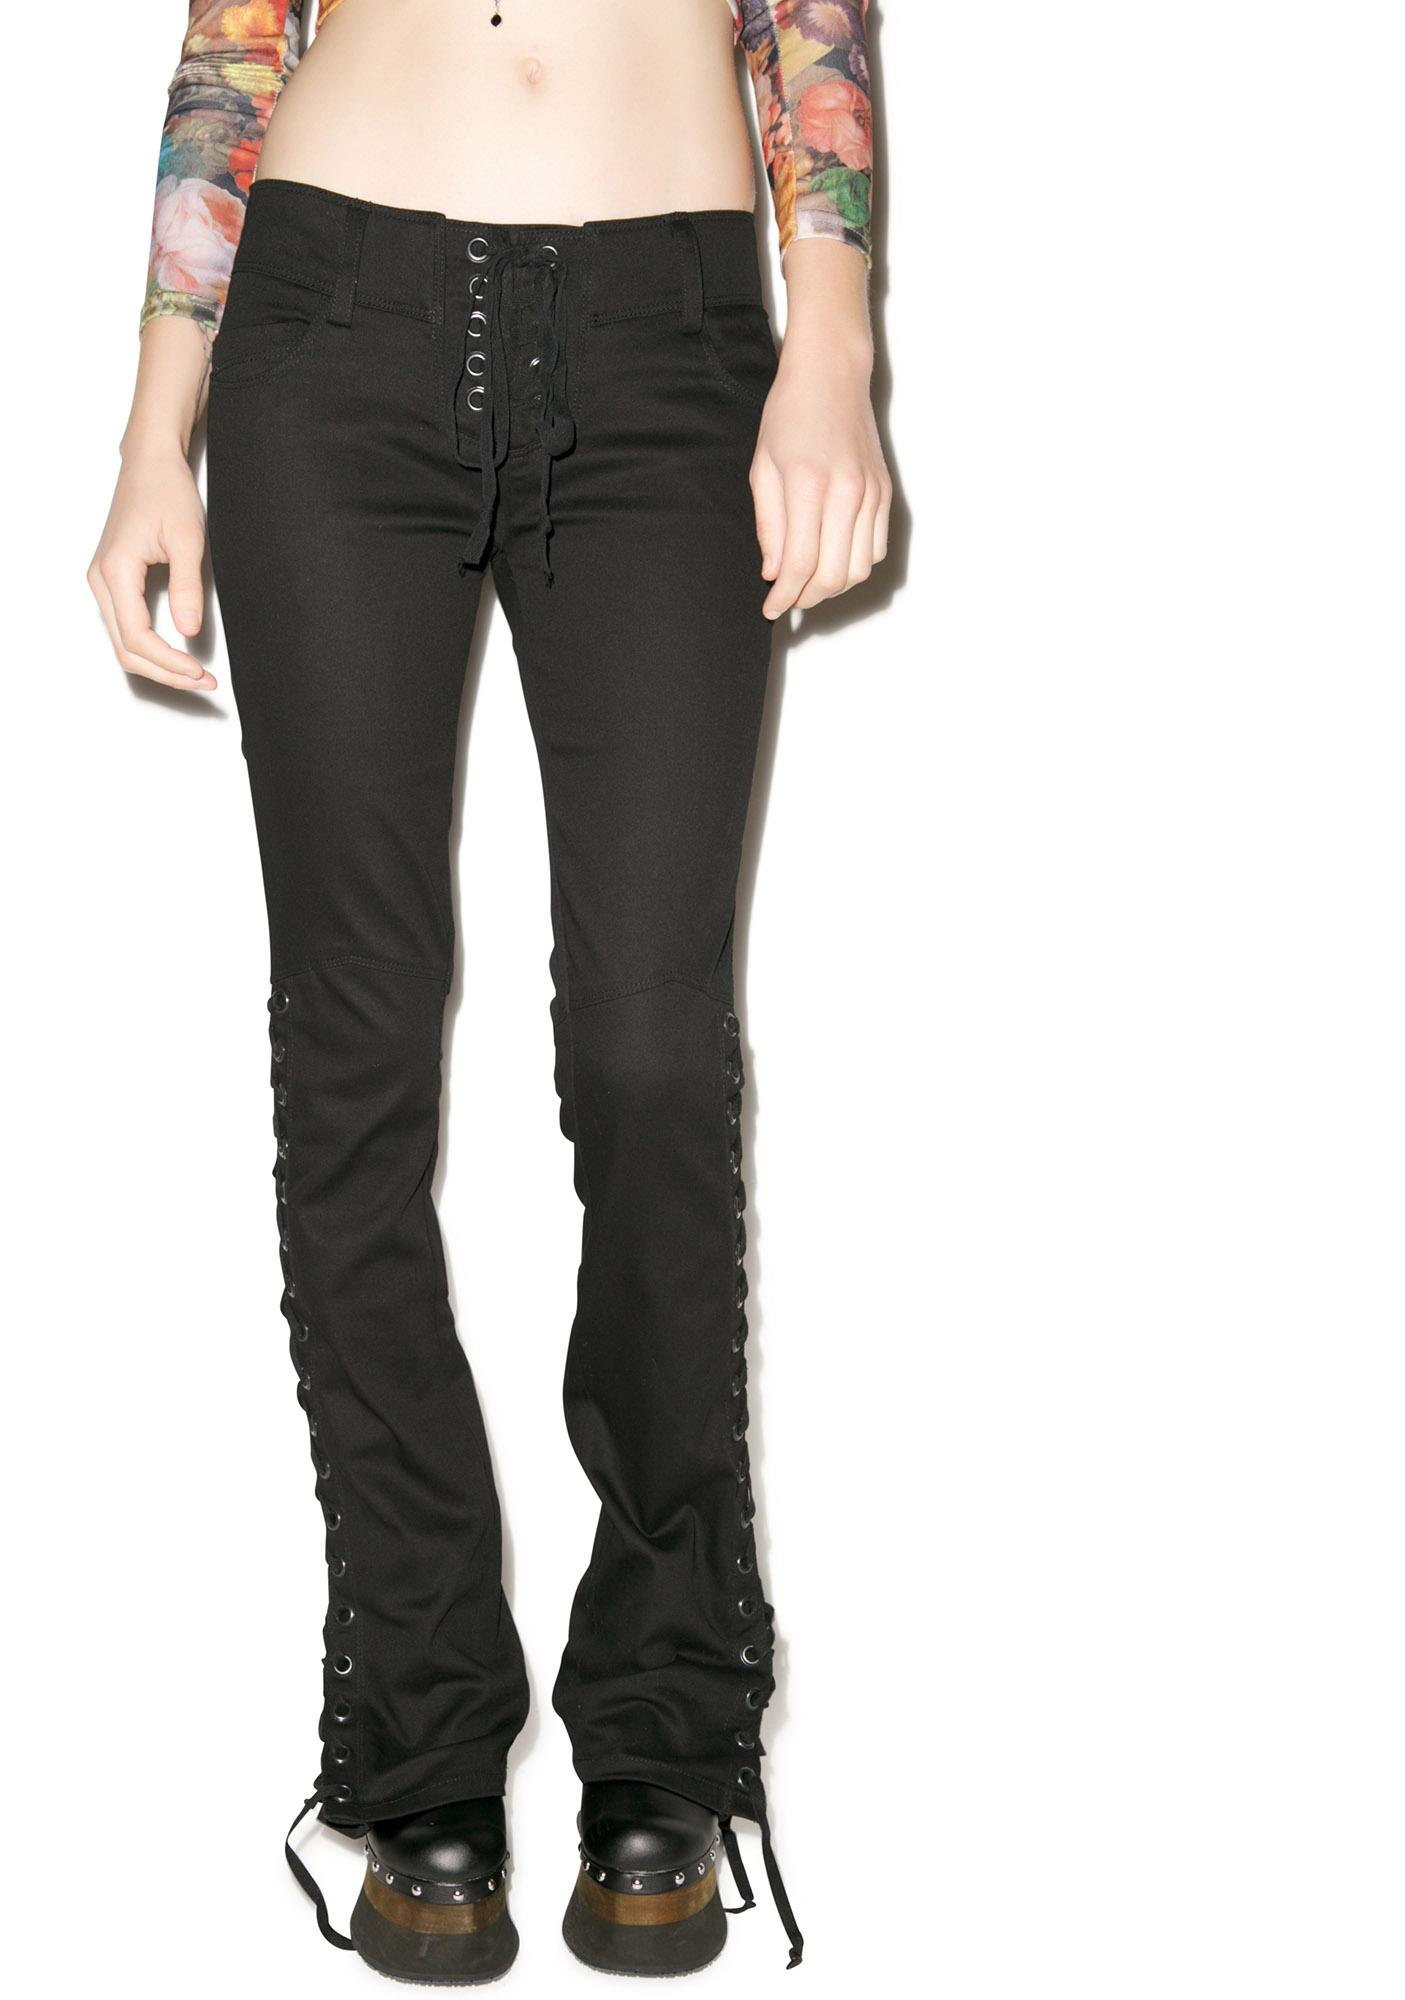 Lip Service Baby Boot Lace Up Stretch Twill Jeans